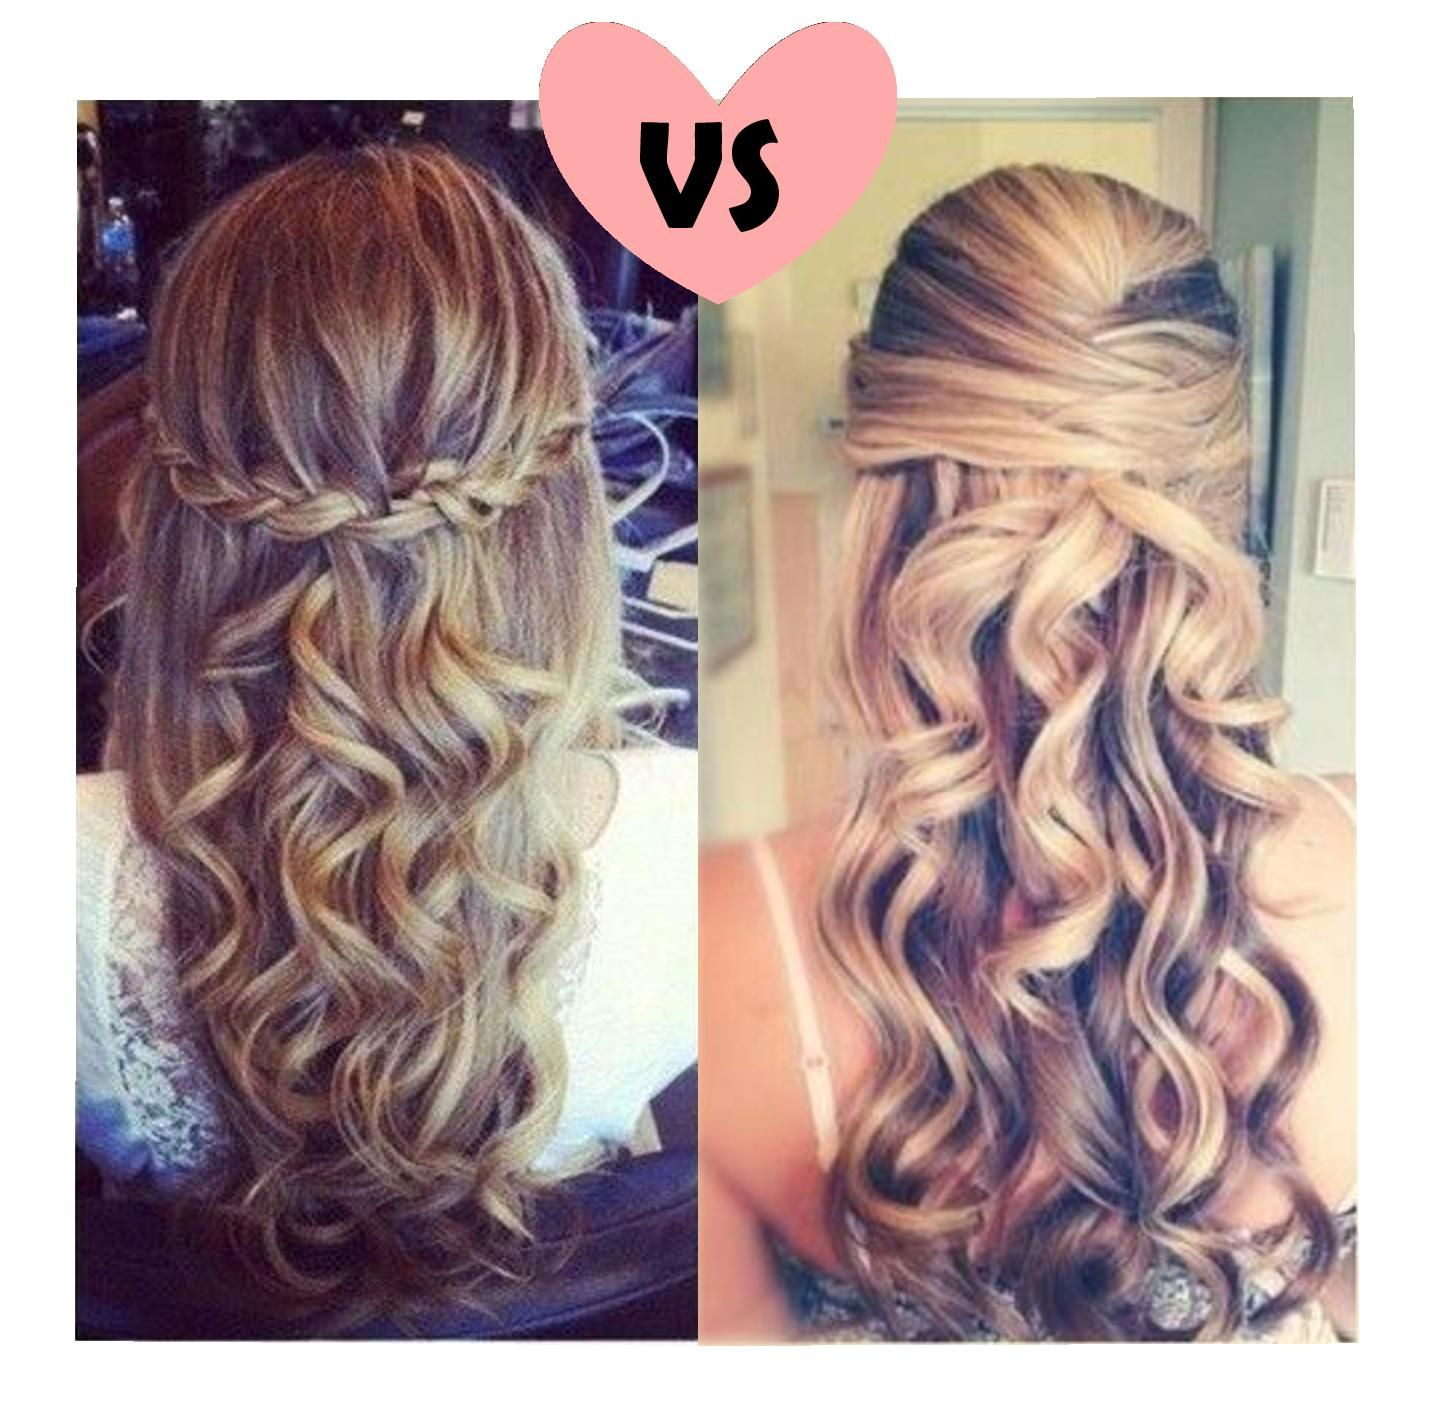 Prime 1000 Images About Sweetheart Dance Hairstyles On Pinterest Hair Short Hairstyles For Black Women Fulllsitofus